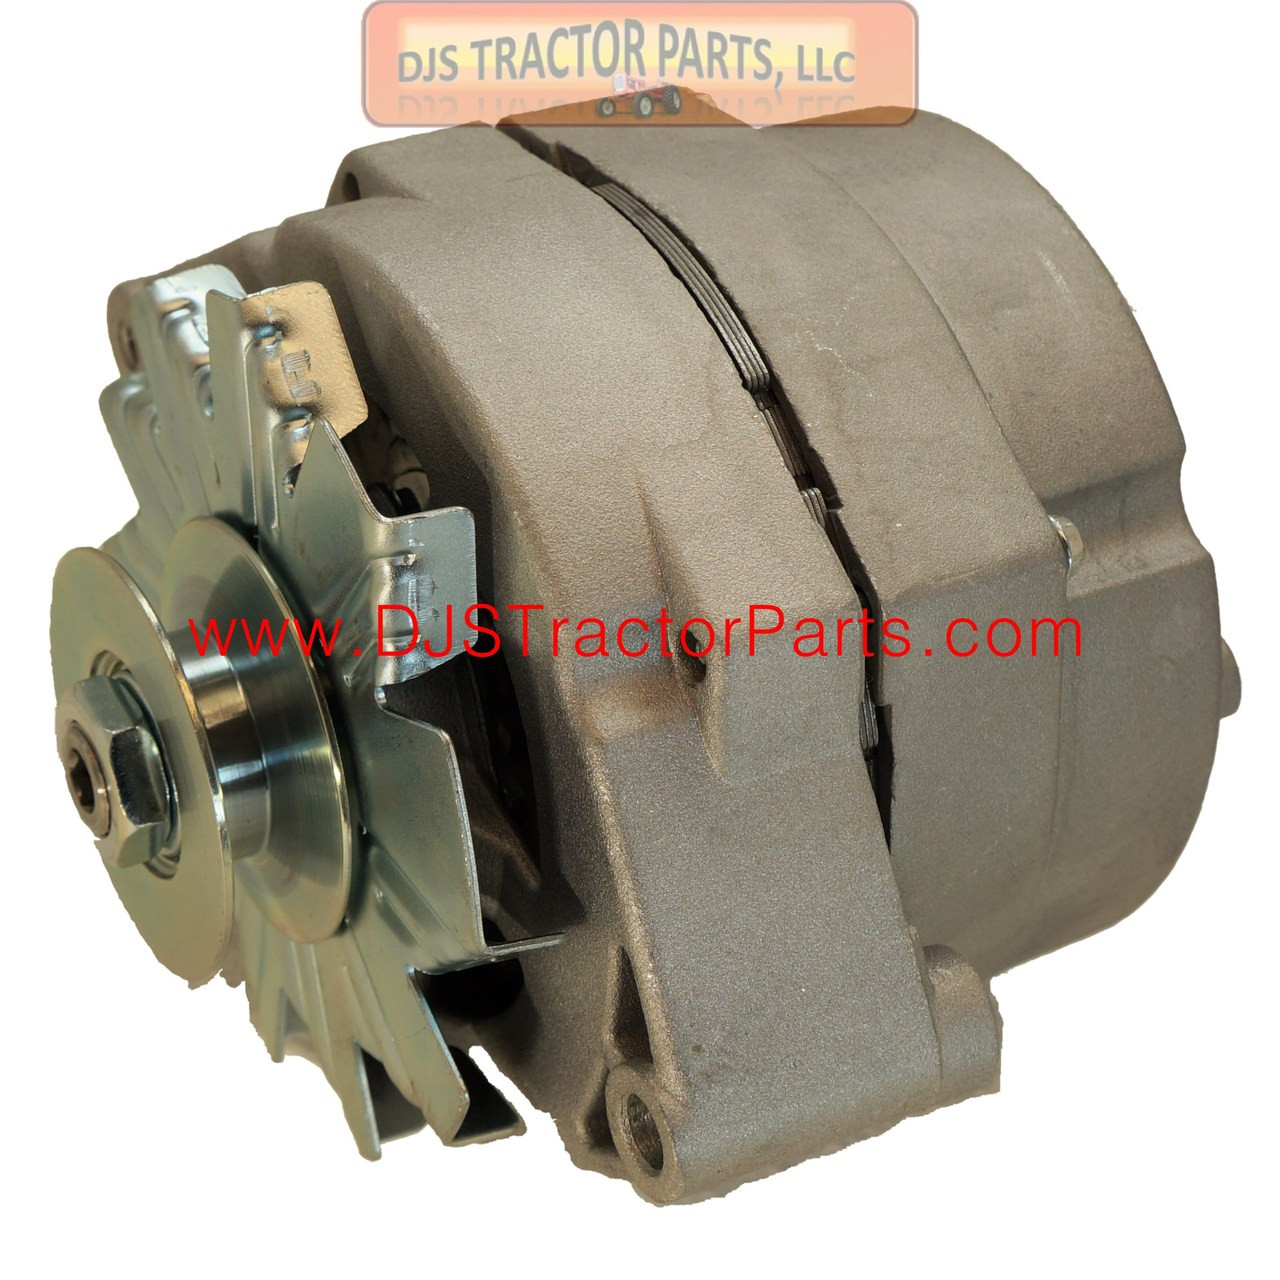 hight resolution of 63 amp one wire alternator with pulley used for converting 6 volt to 12 volt ab 418d djs tractor parts llc